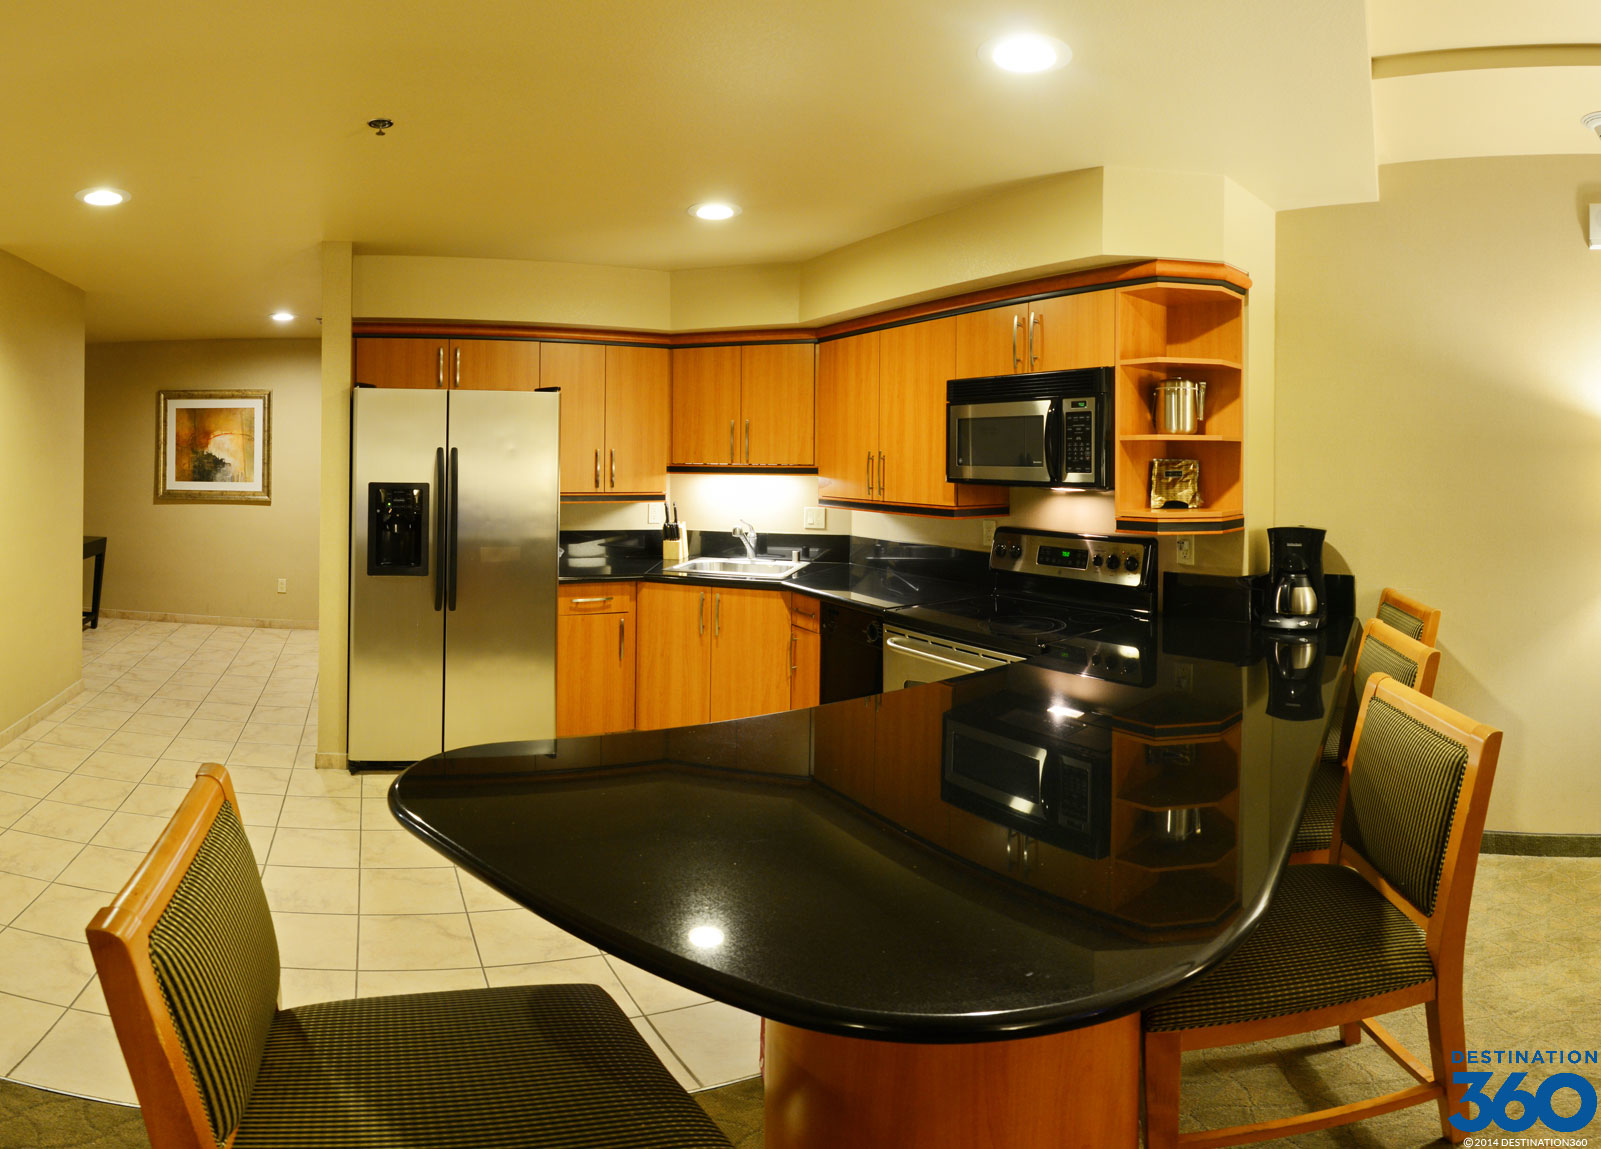 Luxor 2 Bedroom Suite 2 Bedroom Suites Las Vegas 2 Room Suites Las Vegas